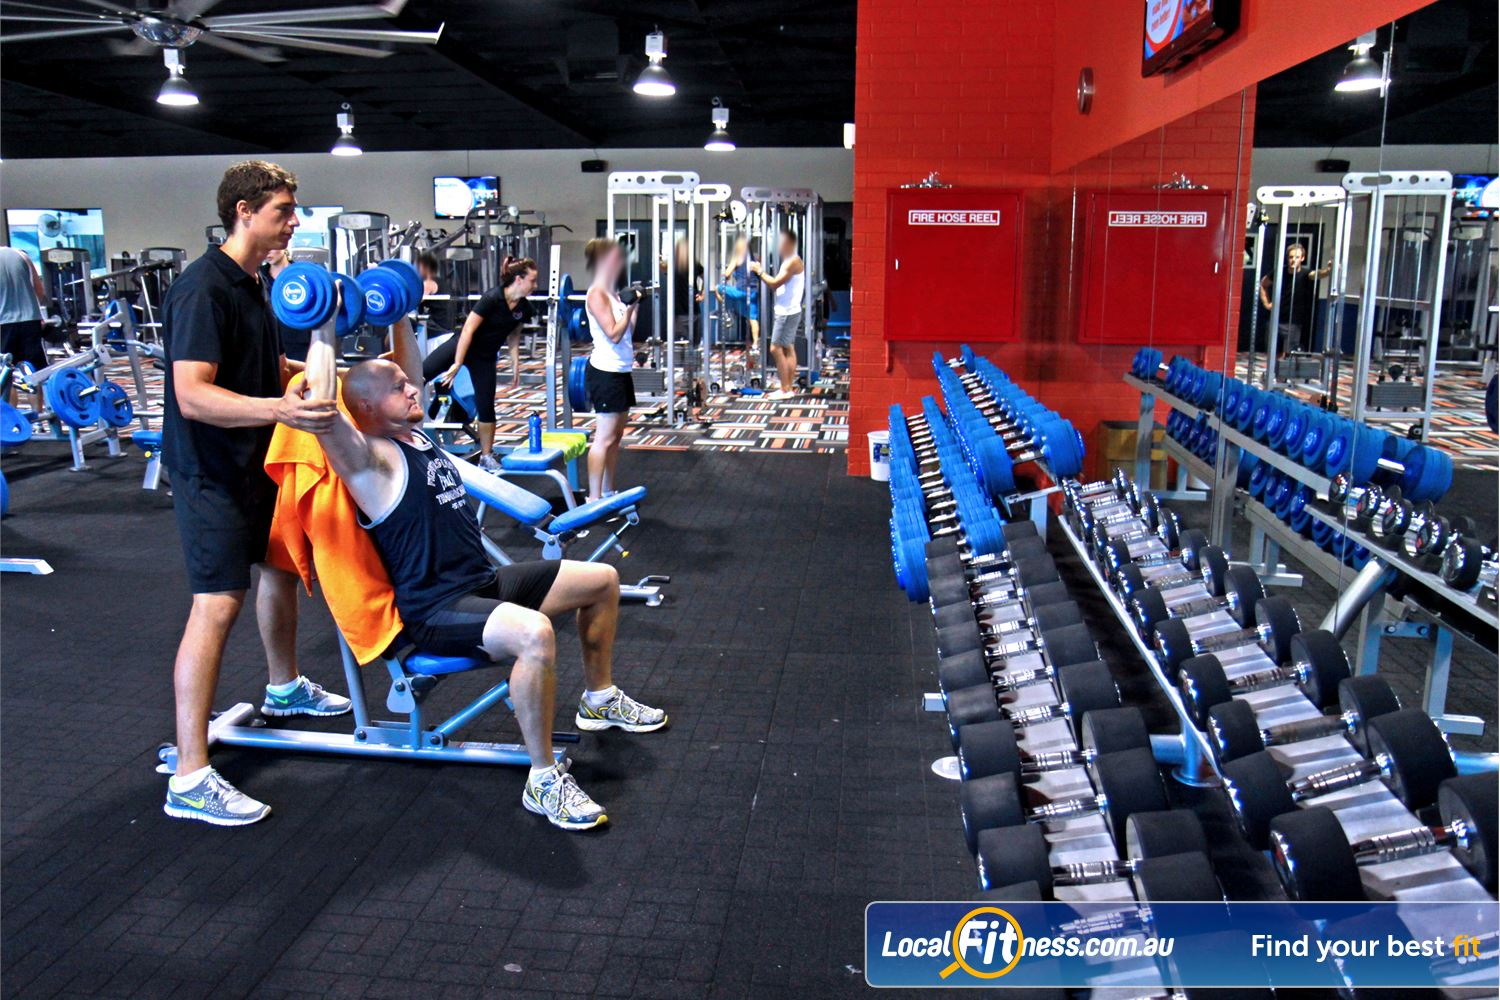 Goodlife Health Clubs Kingsway Near Greenwood Our Madeley gym includes a comprehensive range of dumbbells and barbells.